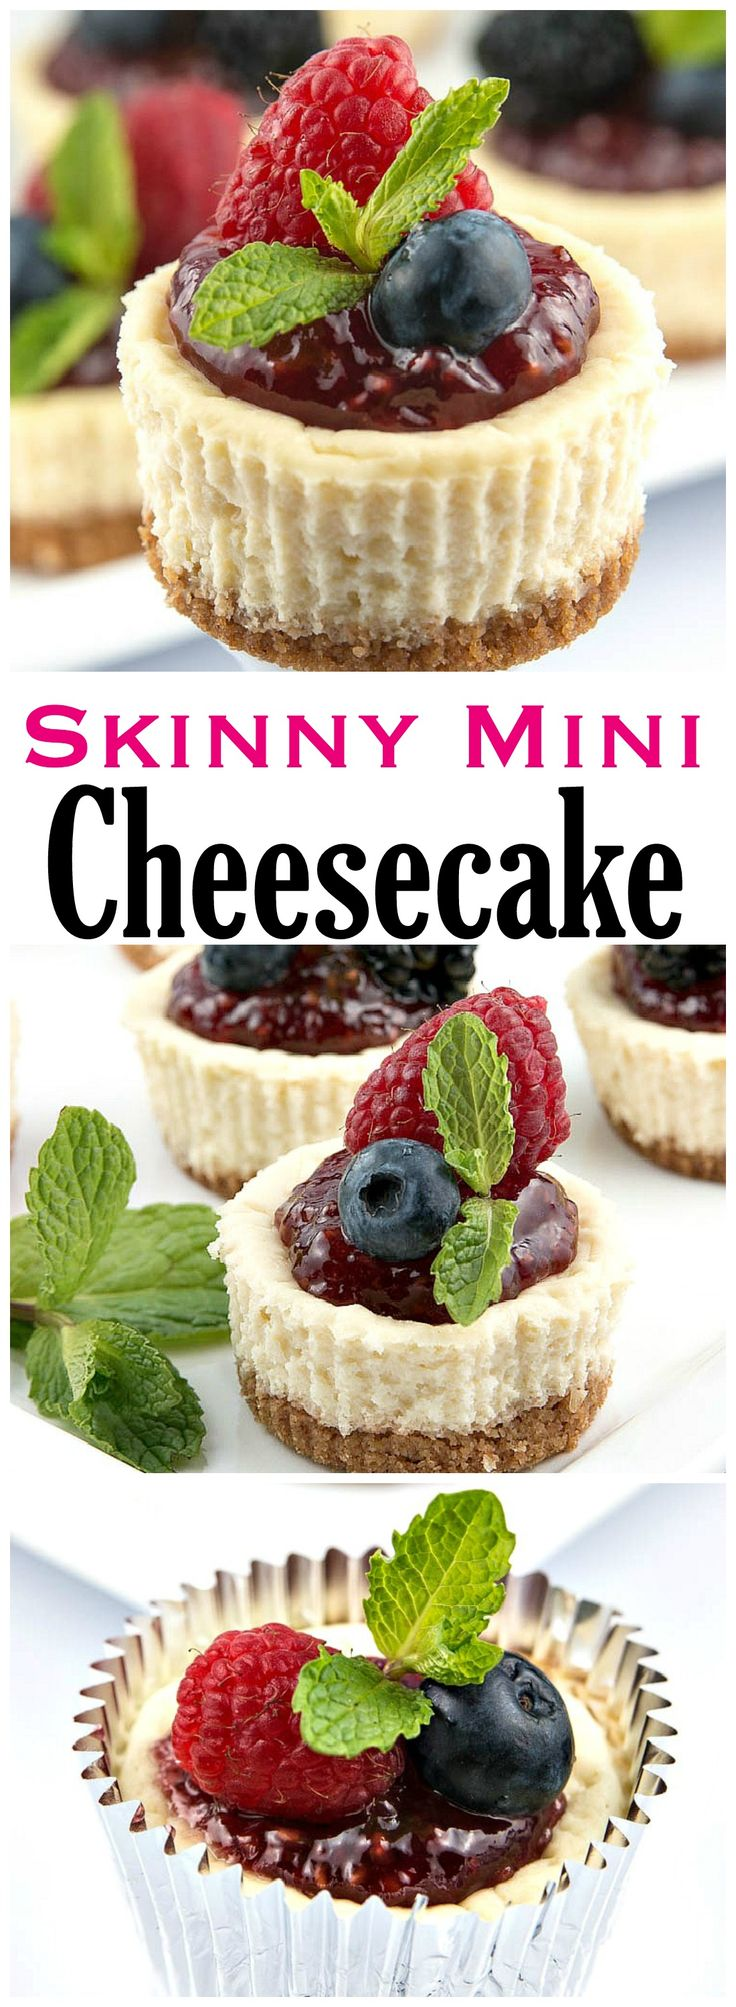 Let me be the first to say you will never miss the extra calories after you have had a Skinny Mini Cheesecake!